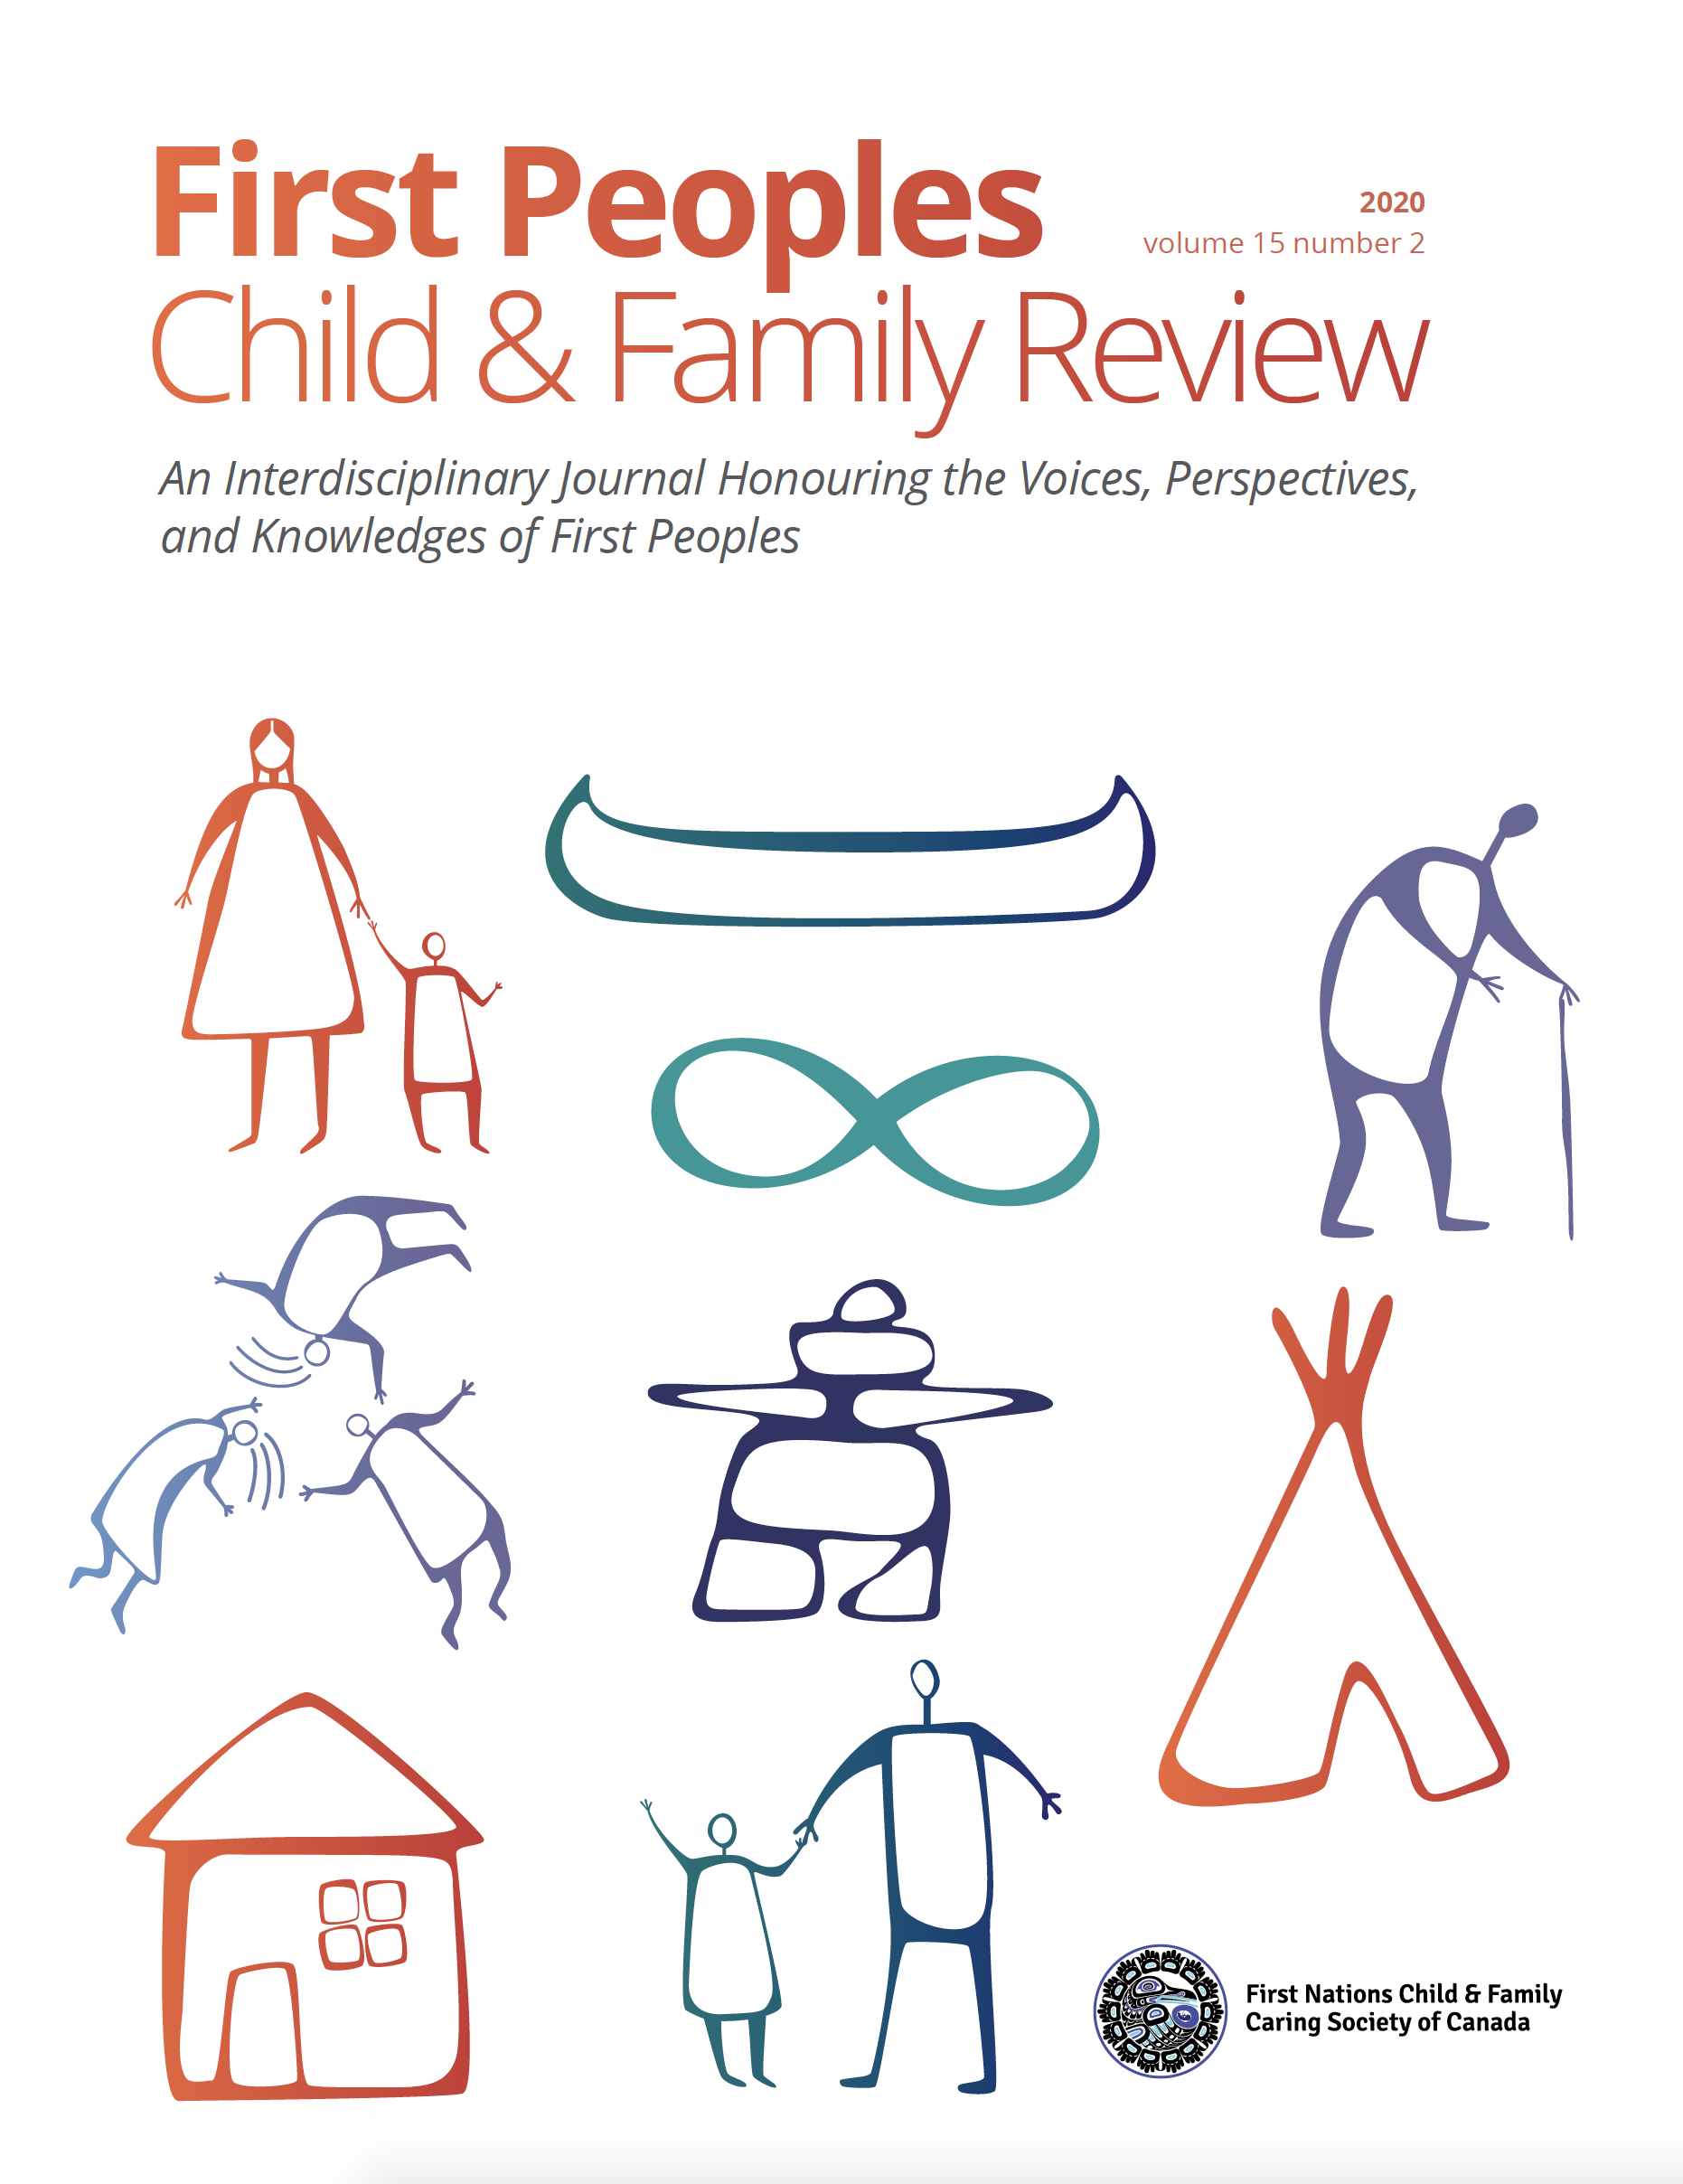 Volume 15, Issue 2 (2020) of the First Peoples Child & Family Review